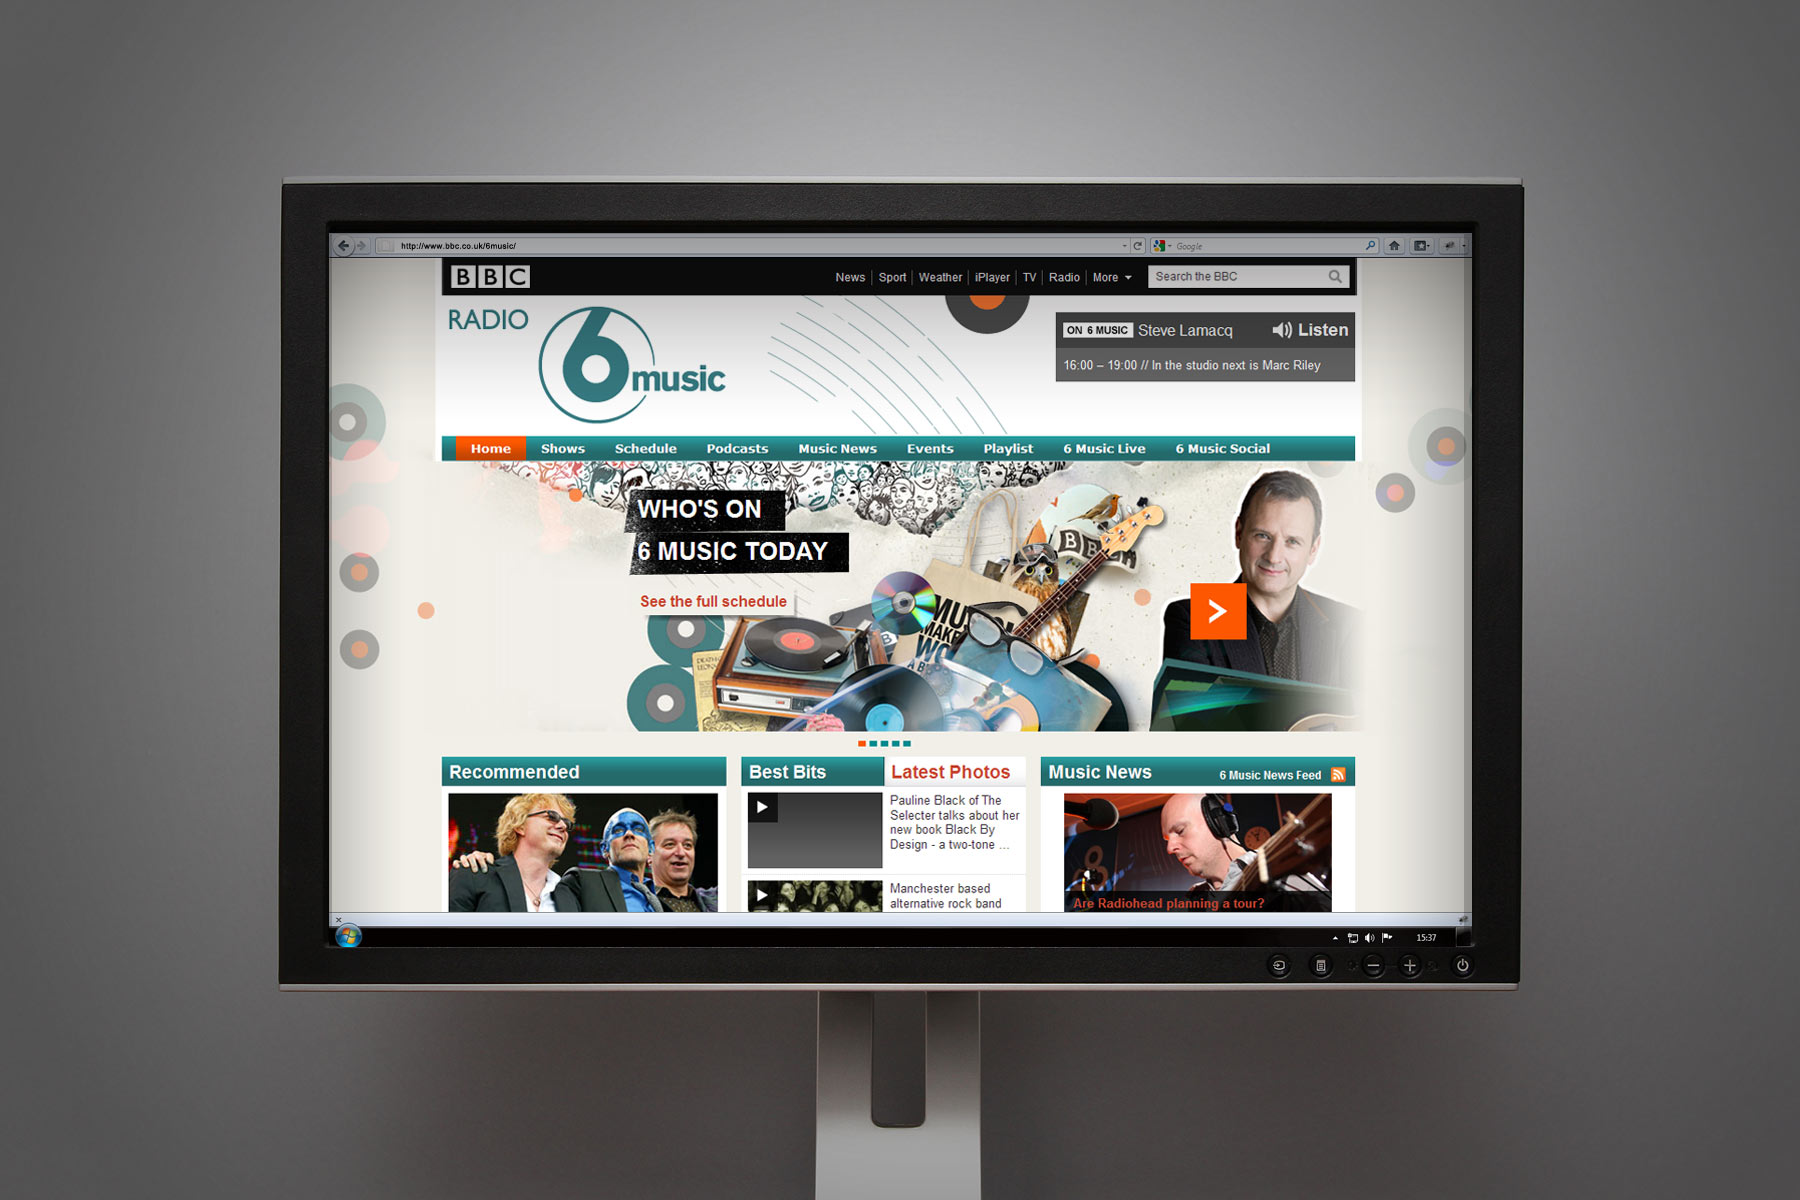 The BBC team have been able to take the brand toolkit and have developed further pages, such as the 6music home page here.